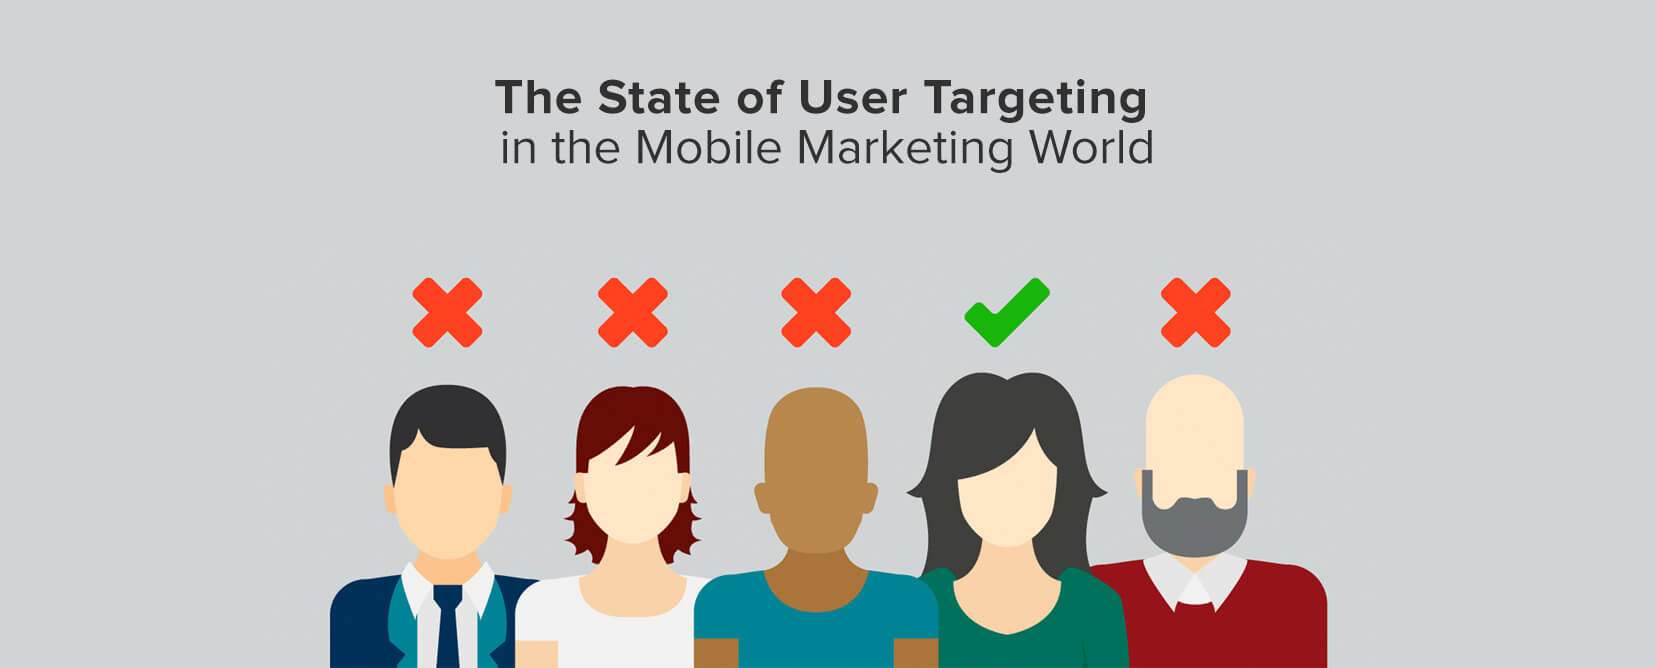 The State of User Targeting in the Mobile Marketing World